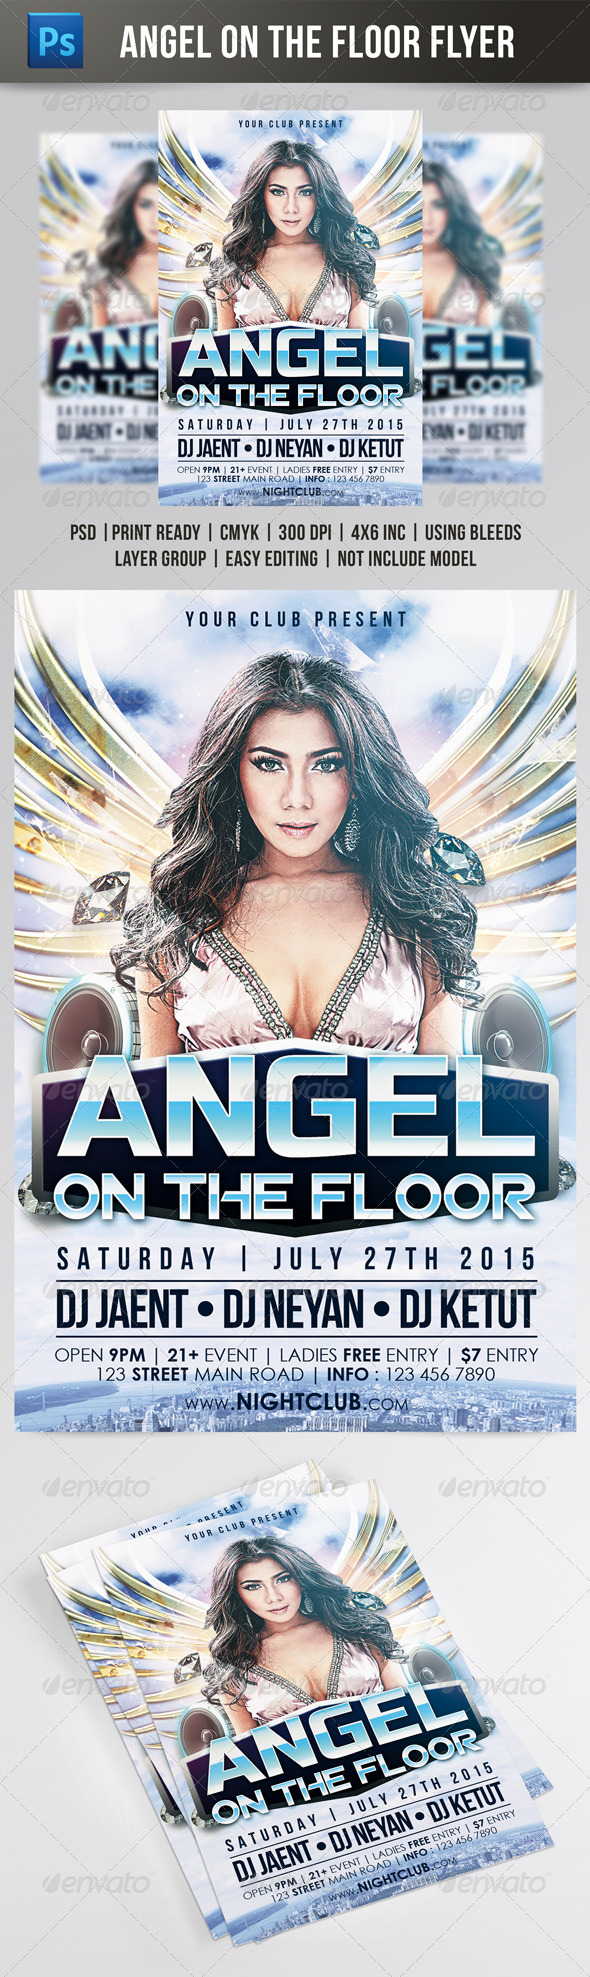 Angel On The Floor Flyer